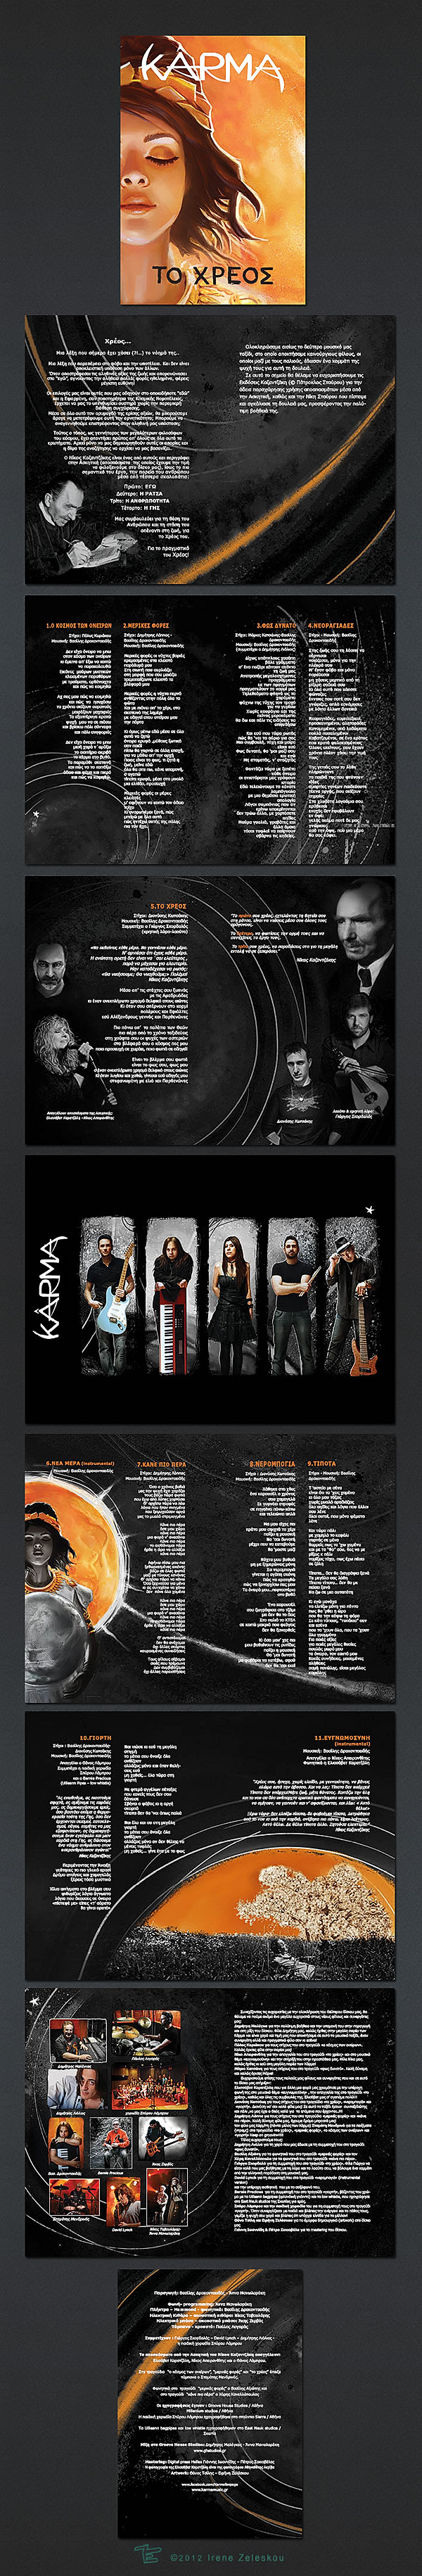 karma_xreos_booklet_design